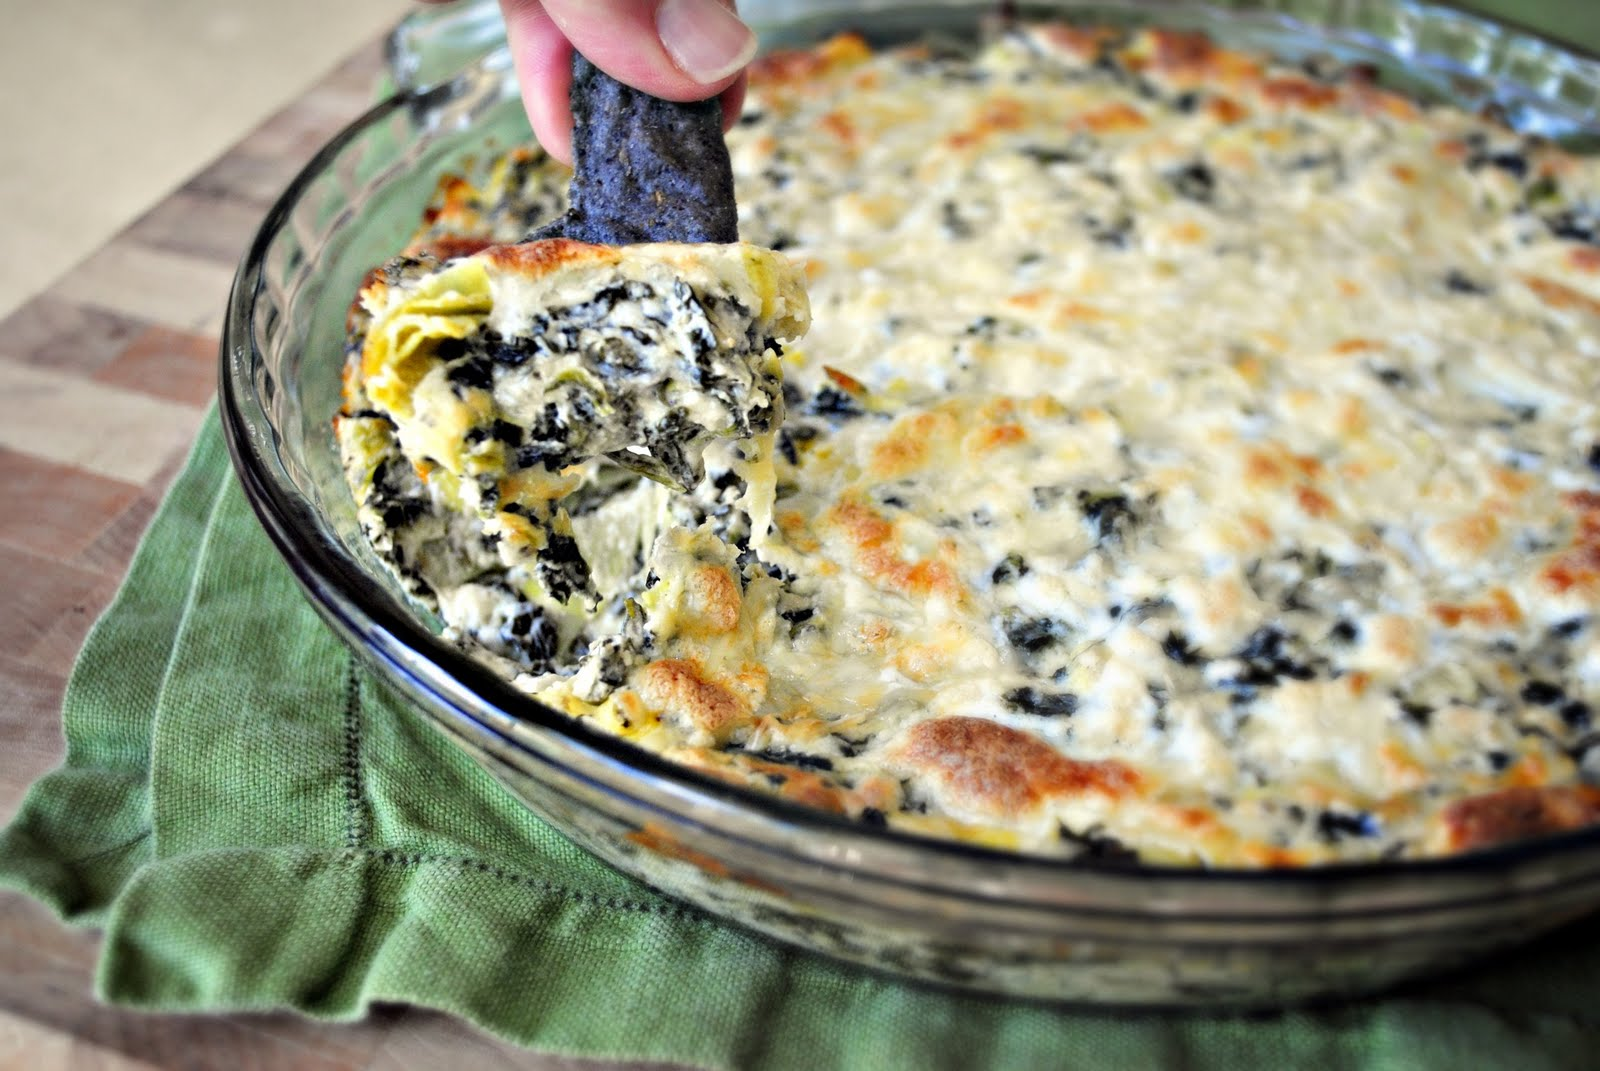 Simply Scratch Baked Four Cheese Spinach Artichoke Dip